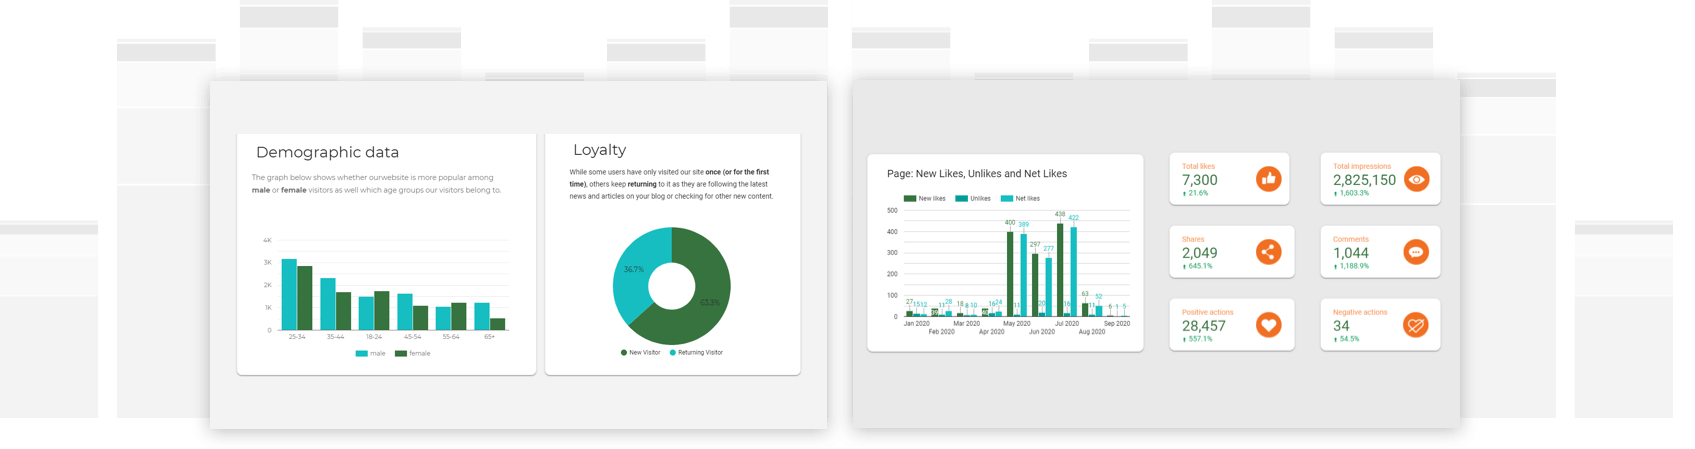 Number of likes on Facebook and daily overview of website traffic in a Google Data Studio report.